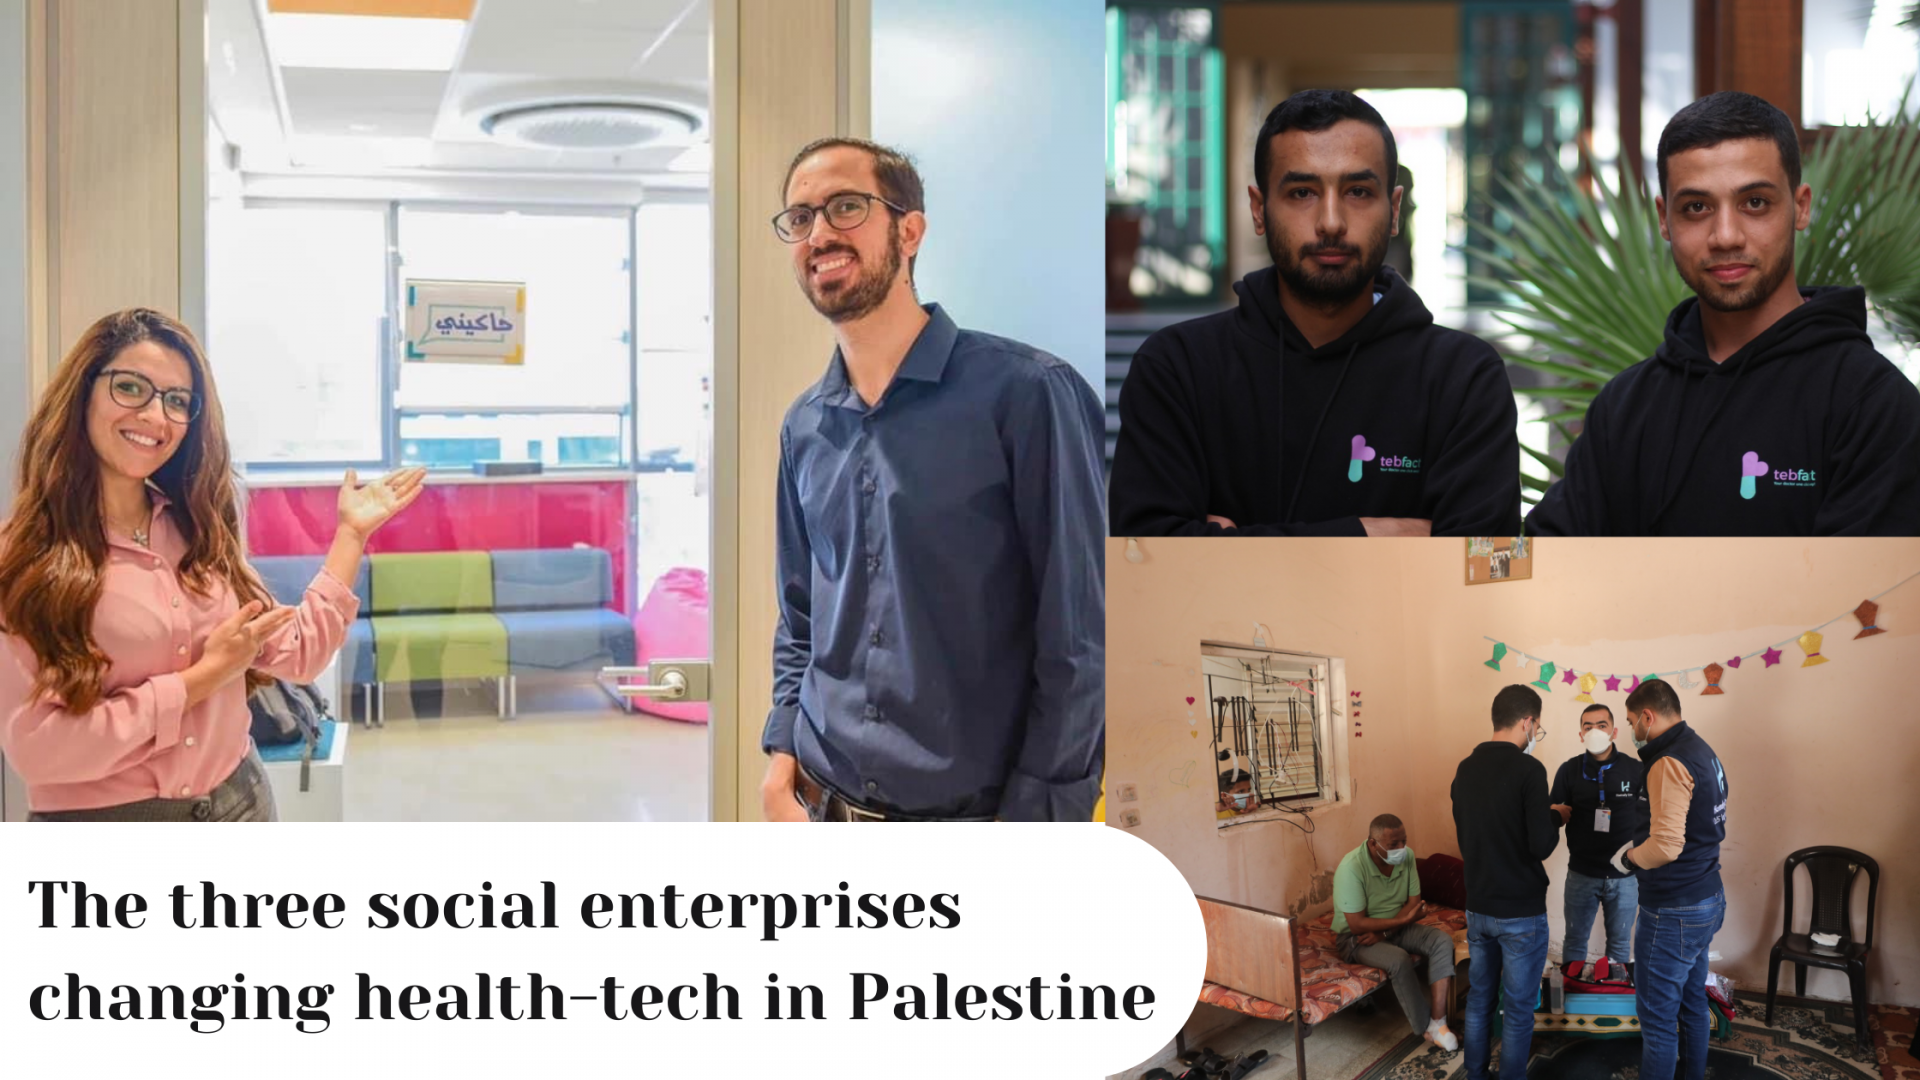 Here are three social enterprises changing health-tech in Palestine